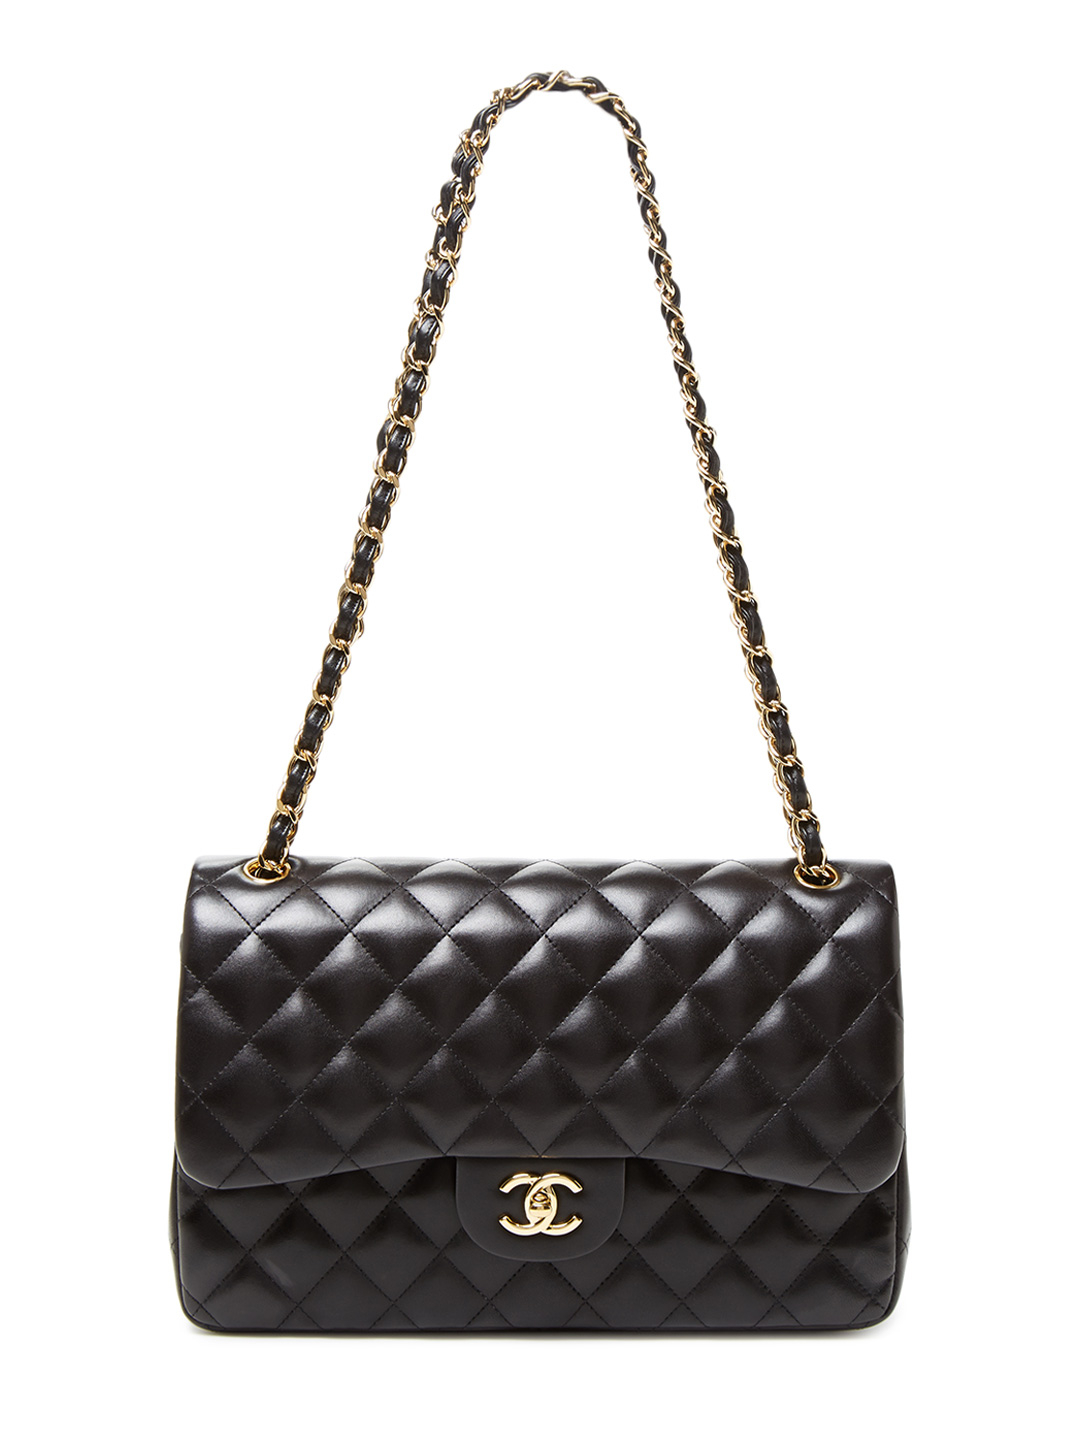 f6c1983b0152 Black Quilted Lambskin Jumbo Classic 2.55 Double Flap Bag by Chanel at Gilt